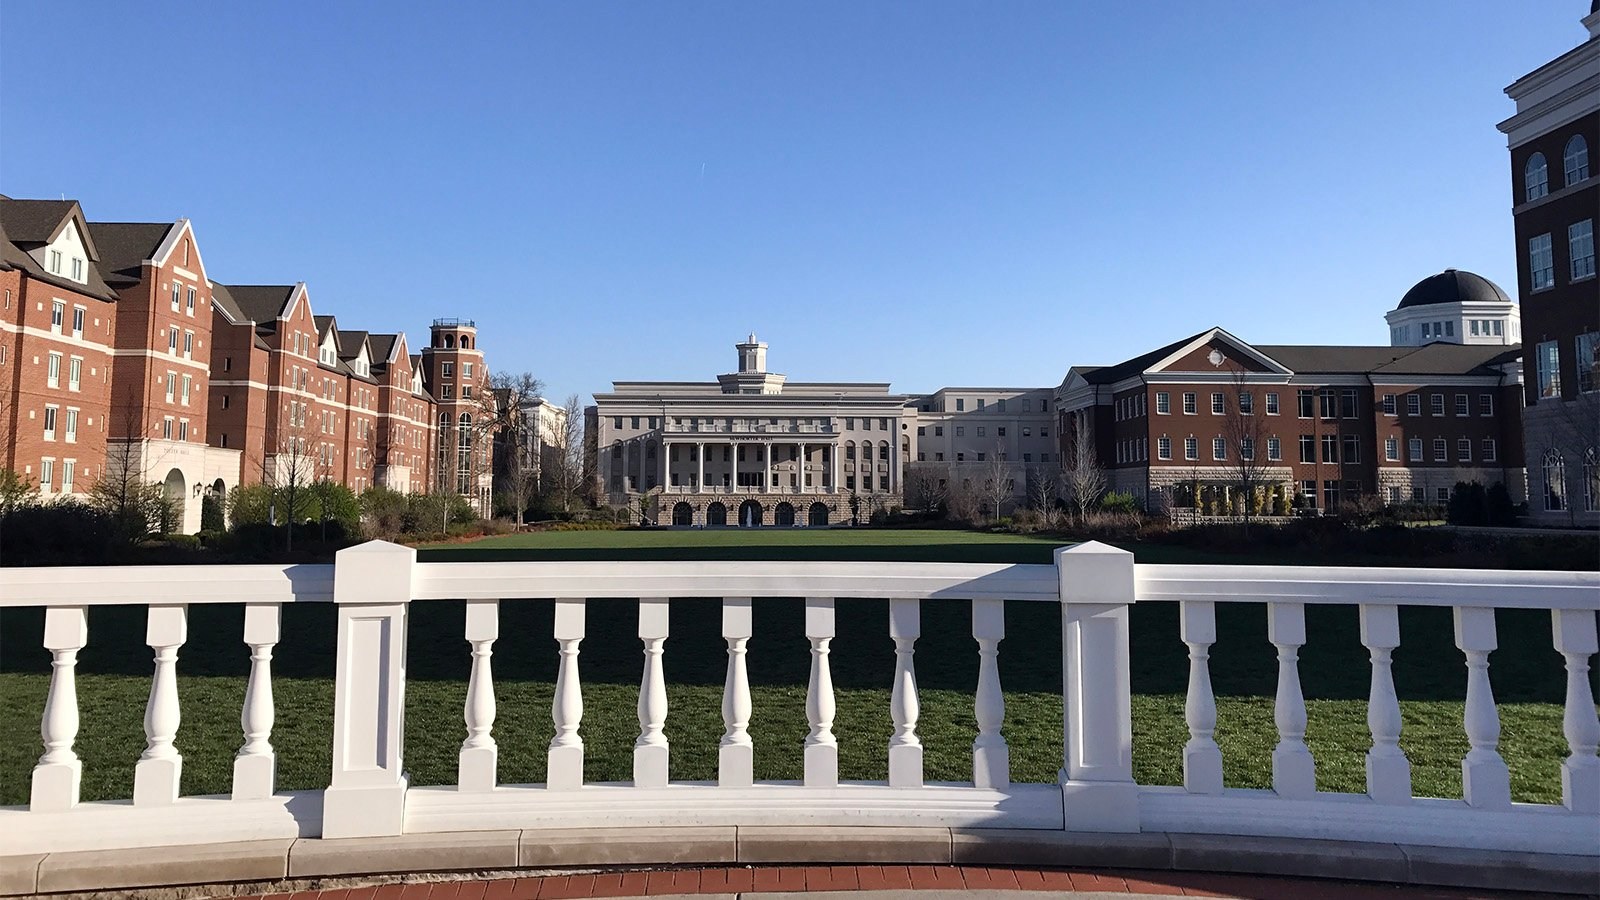 The campus of Belmont University in Nashville, Tennessee. Photo by Lahti213/Creative Commons